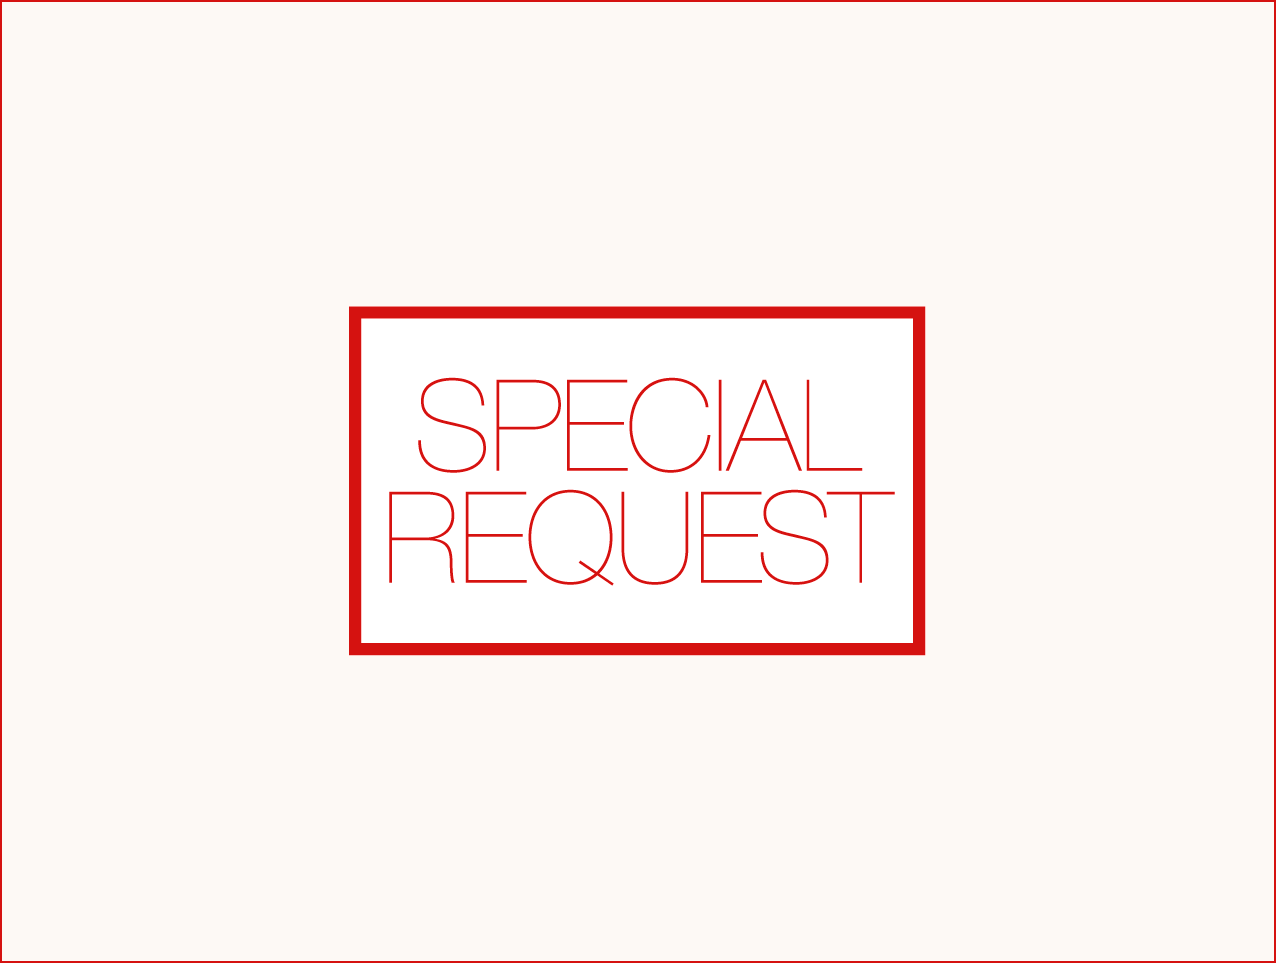 REQUEST-image-builder.png